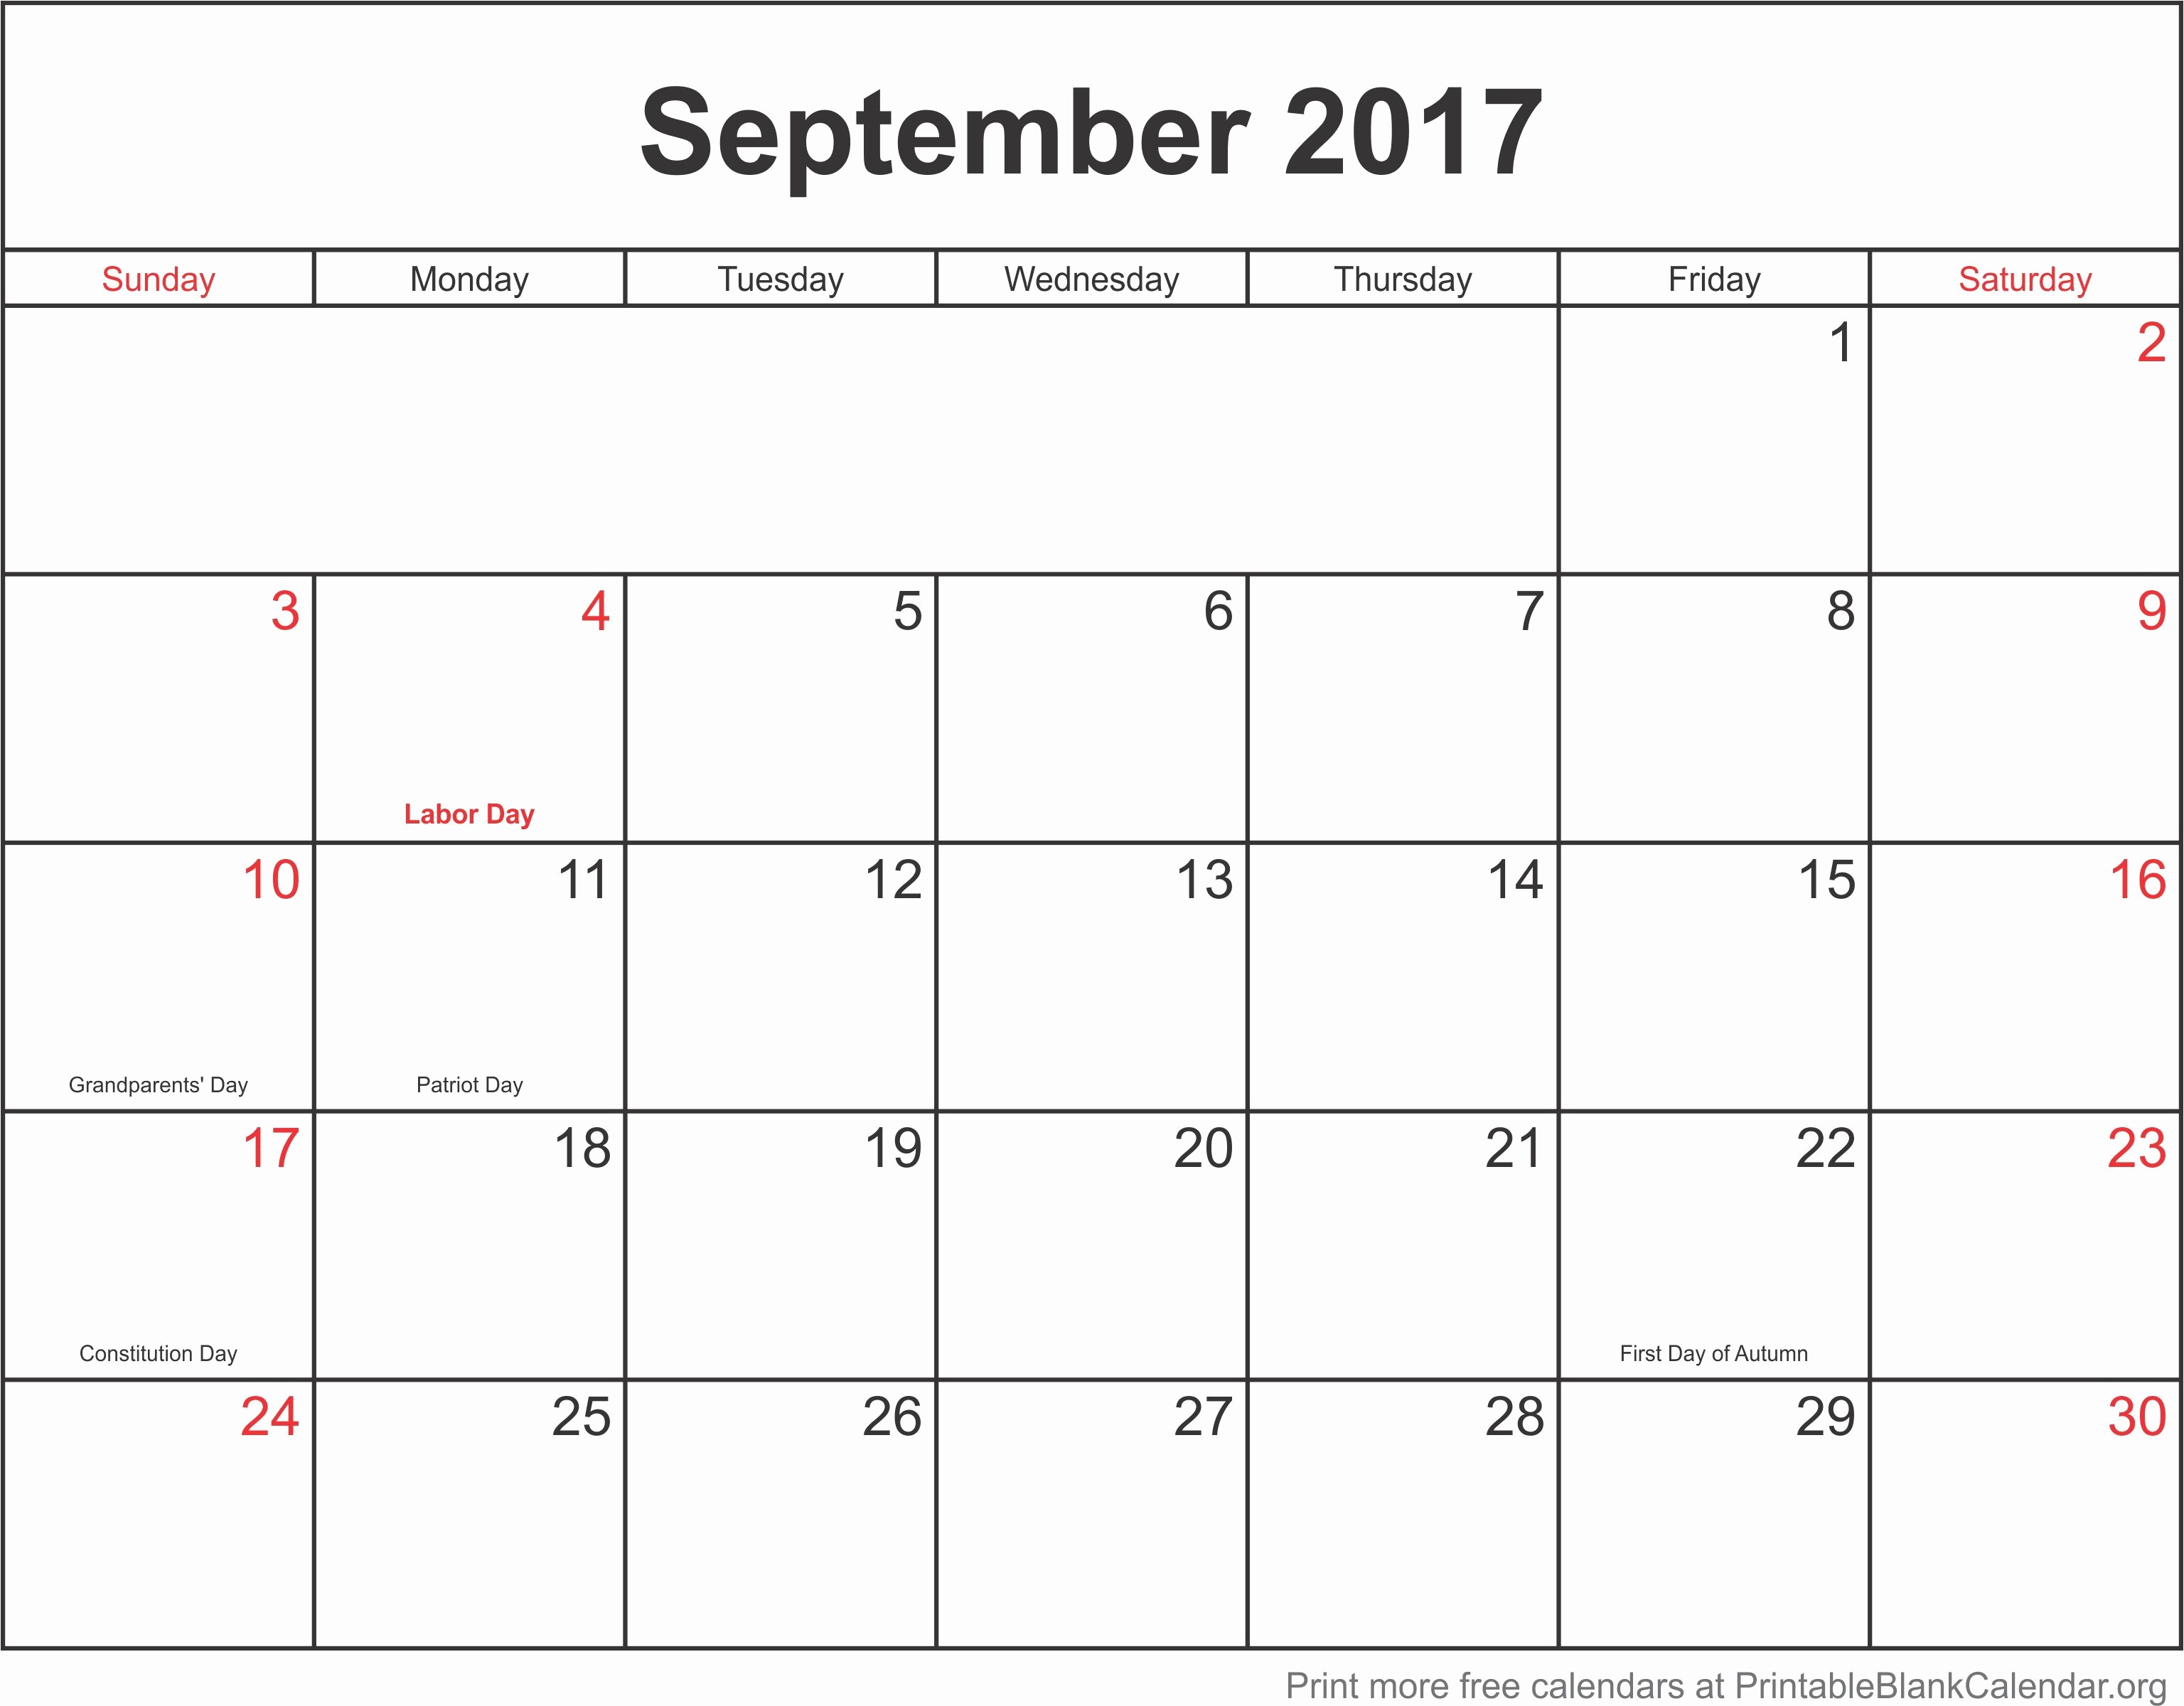 Blank Monthly Calendar 2017 Printable Fresh September 2017 Monthly Calendar Printable Blank Calendar